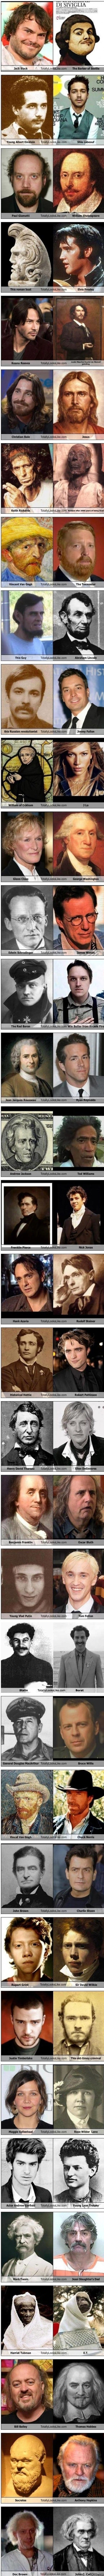 celebrities-who-look-like-historical-people-pictures